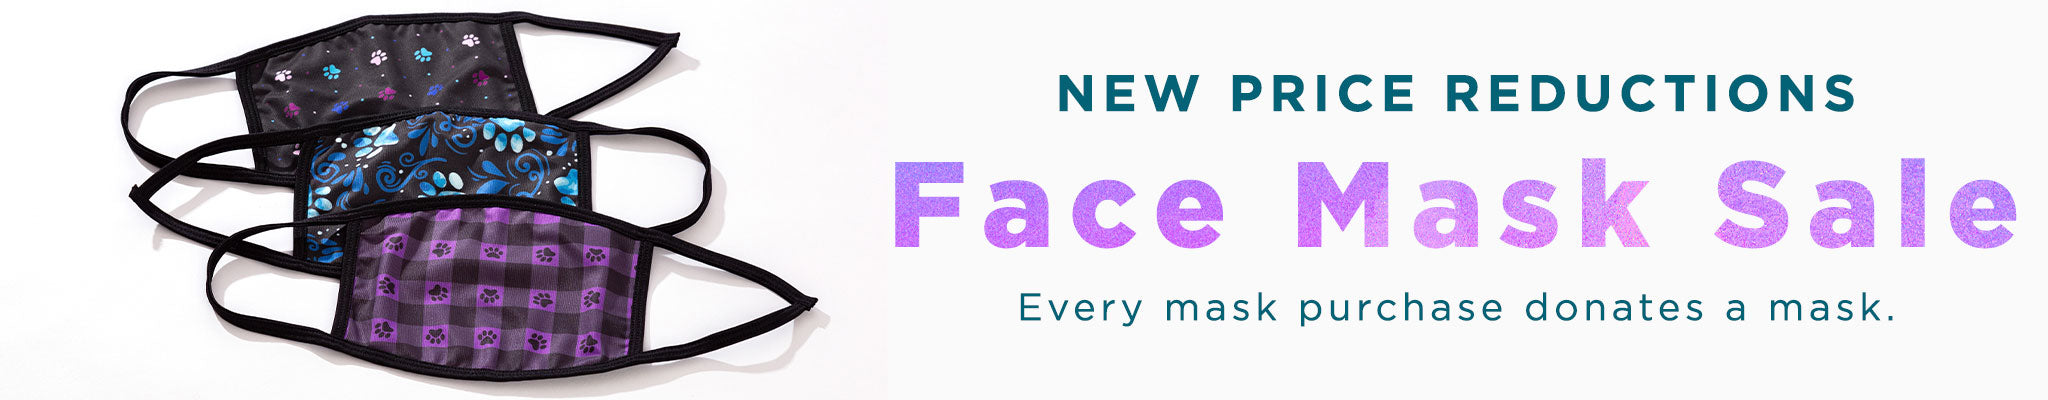 Face Mask Sale | Every mask purchase donates a mask. | New Price Reductions